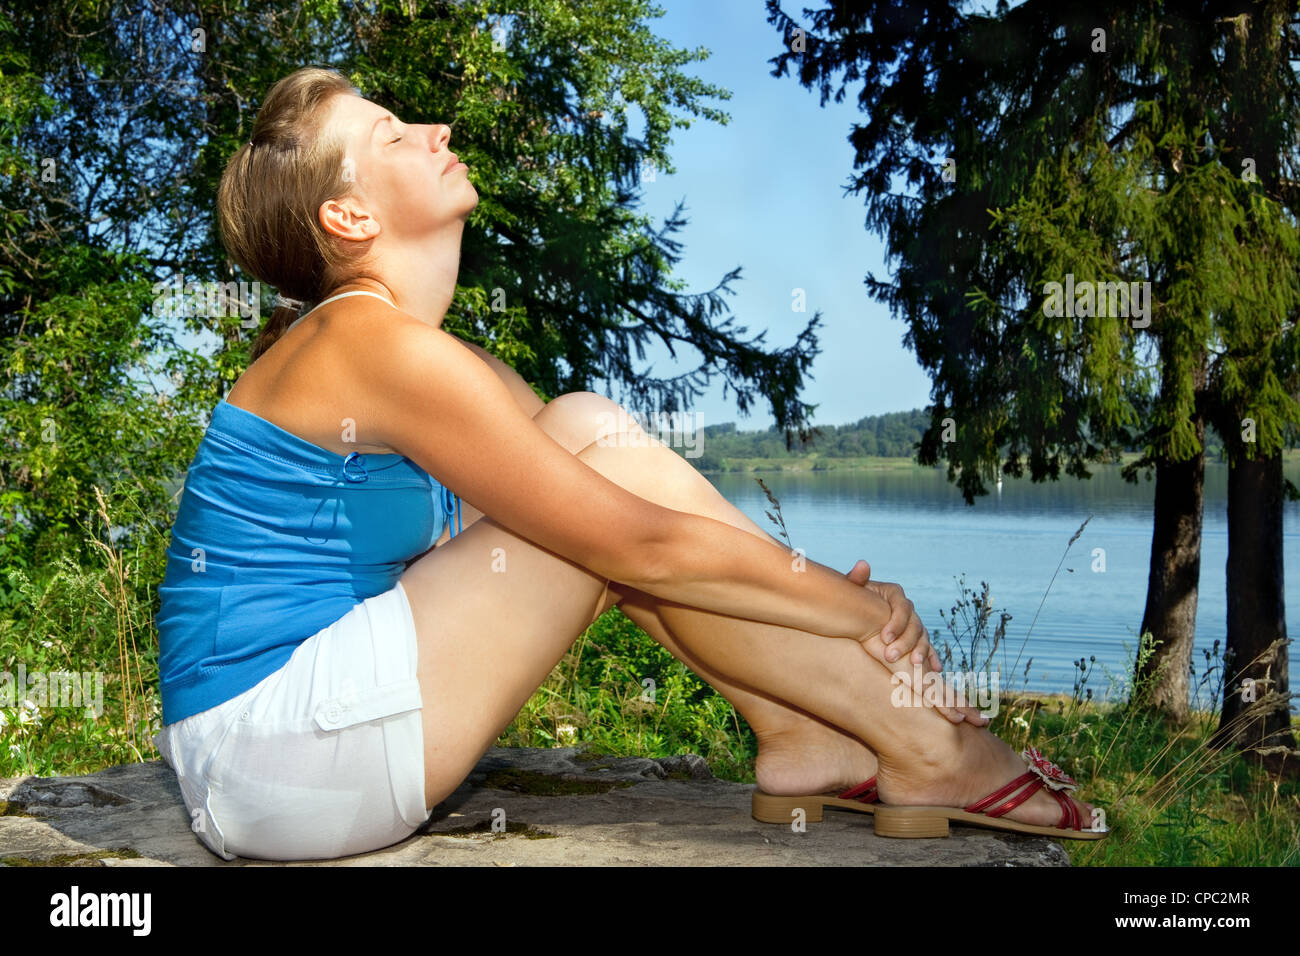 woman relaxing - Stock Image